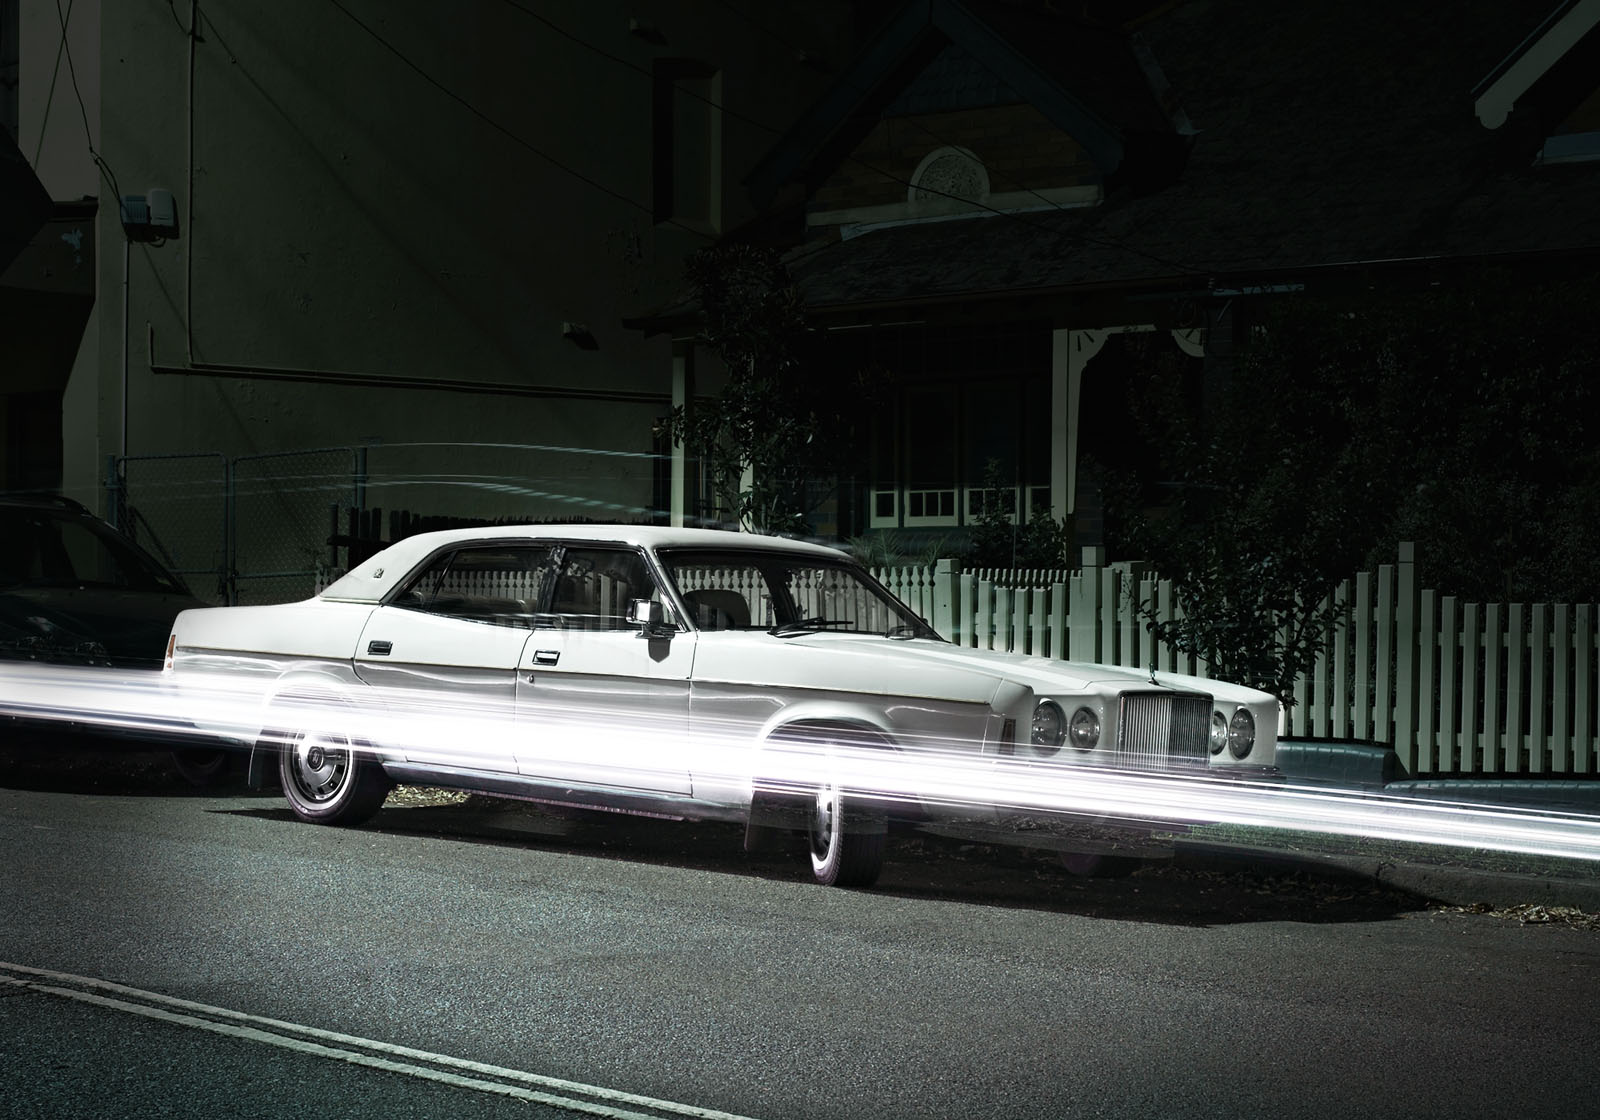 The Ghost Car